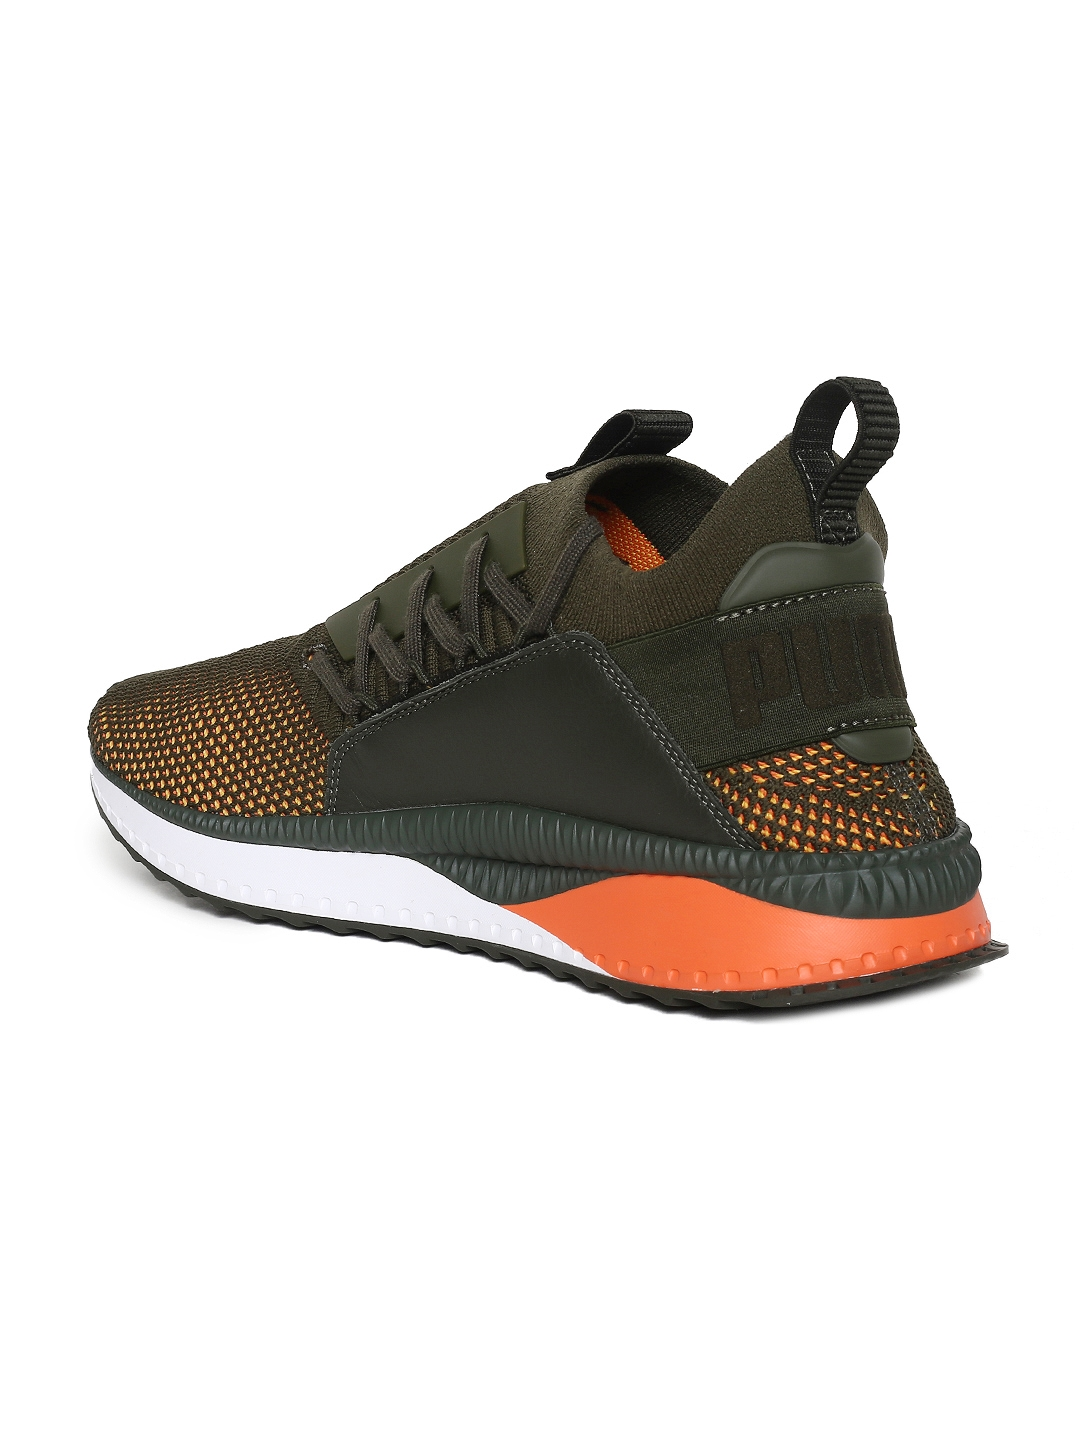 Buy Puma Men Brown TSUGI Jun CLRSHFT Sneakers - Casual Shoes for Men ... 4bd0619c8